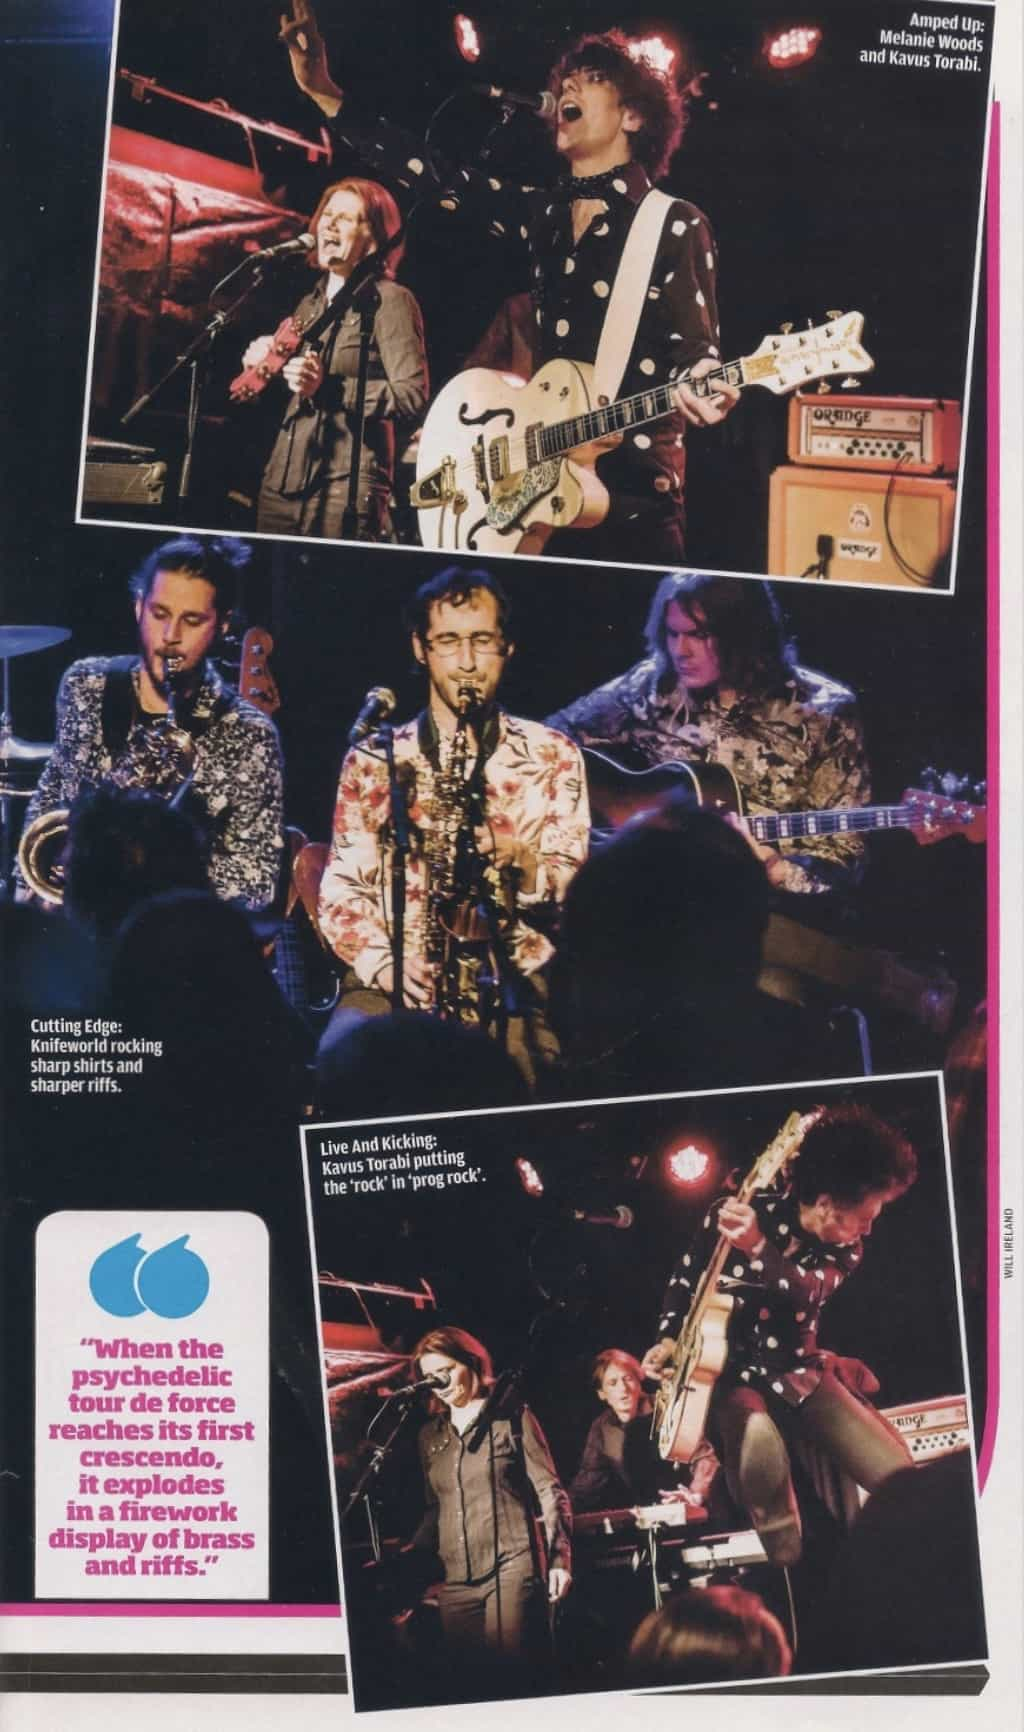 Knifeworld Live Review in Prog Magazine